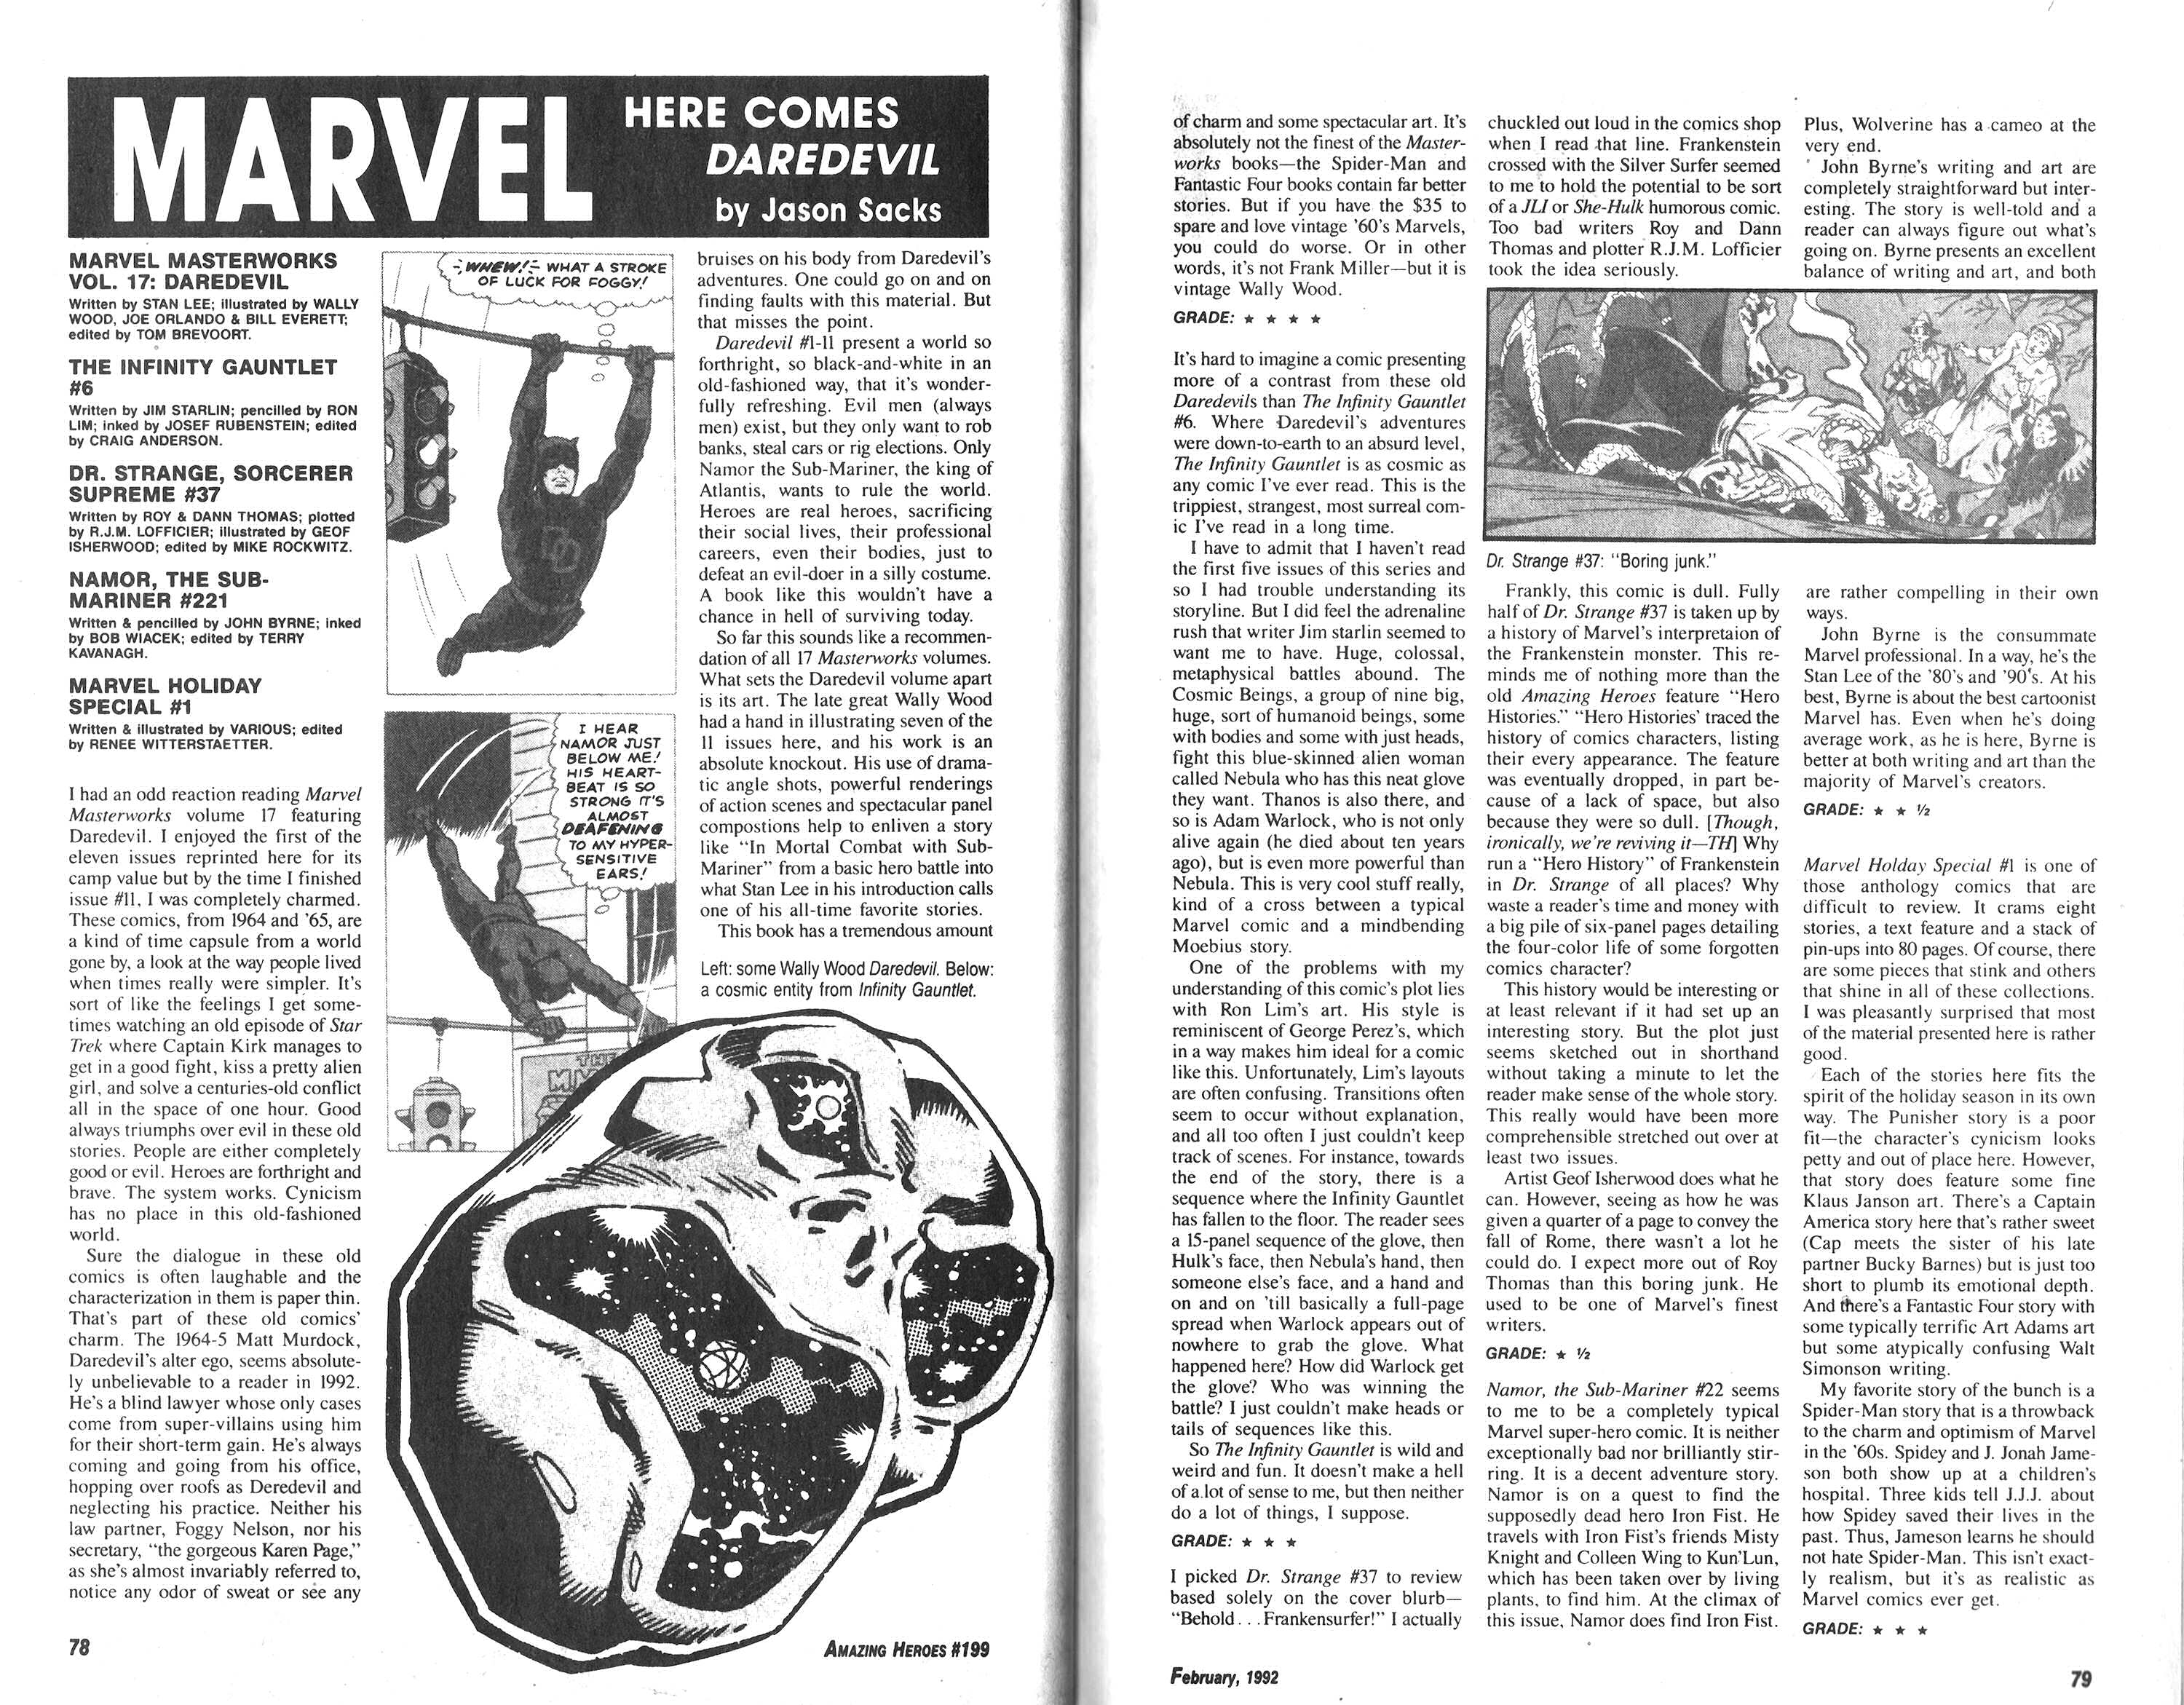 Read online Amazing Heroes comic -  Issue #199 - 40